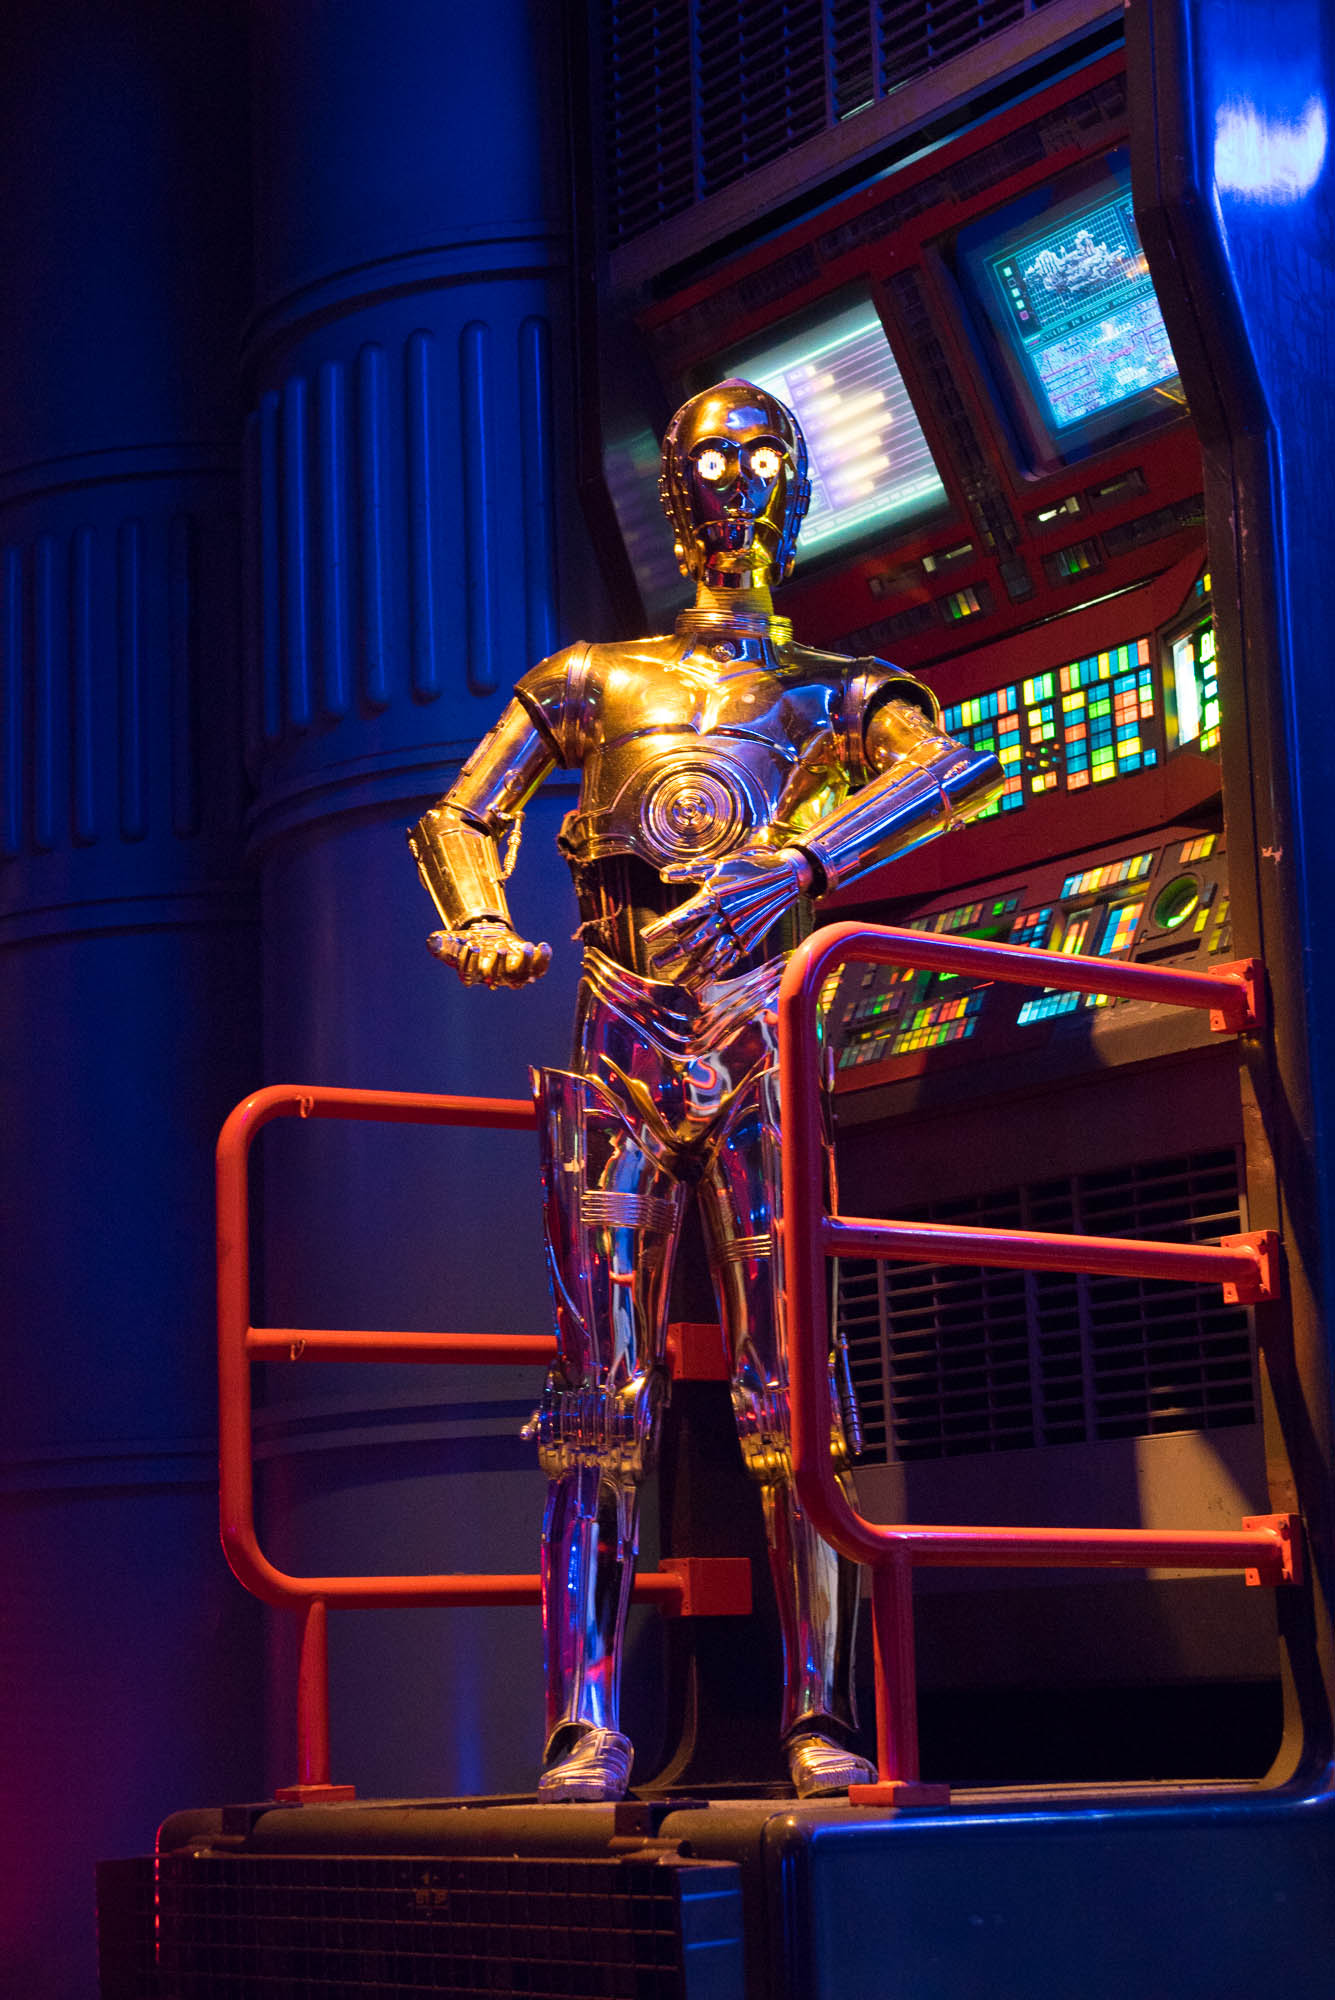 Photograph of C3PO on a set at Disney Paris